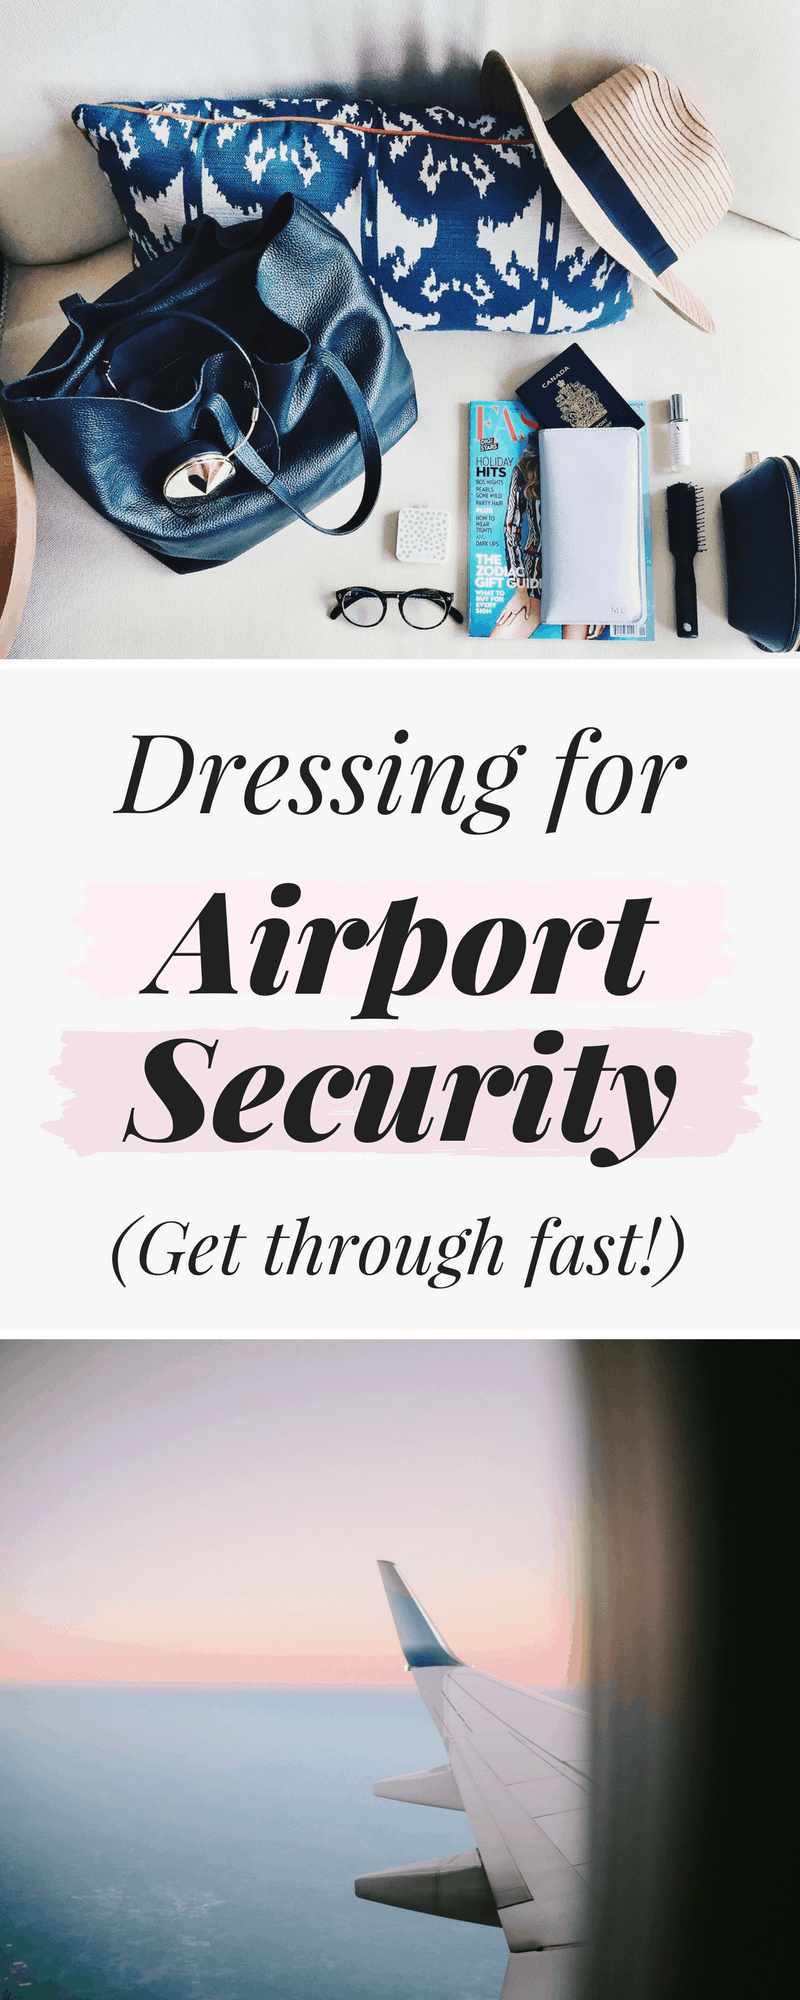 Comfortable airport outfits: What to wear to get through airport security fast